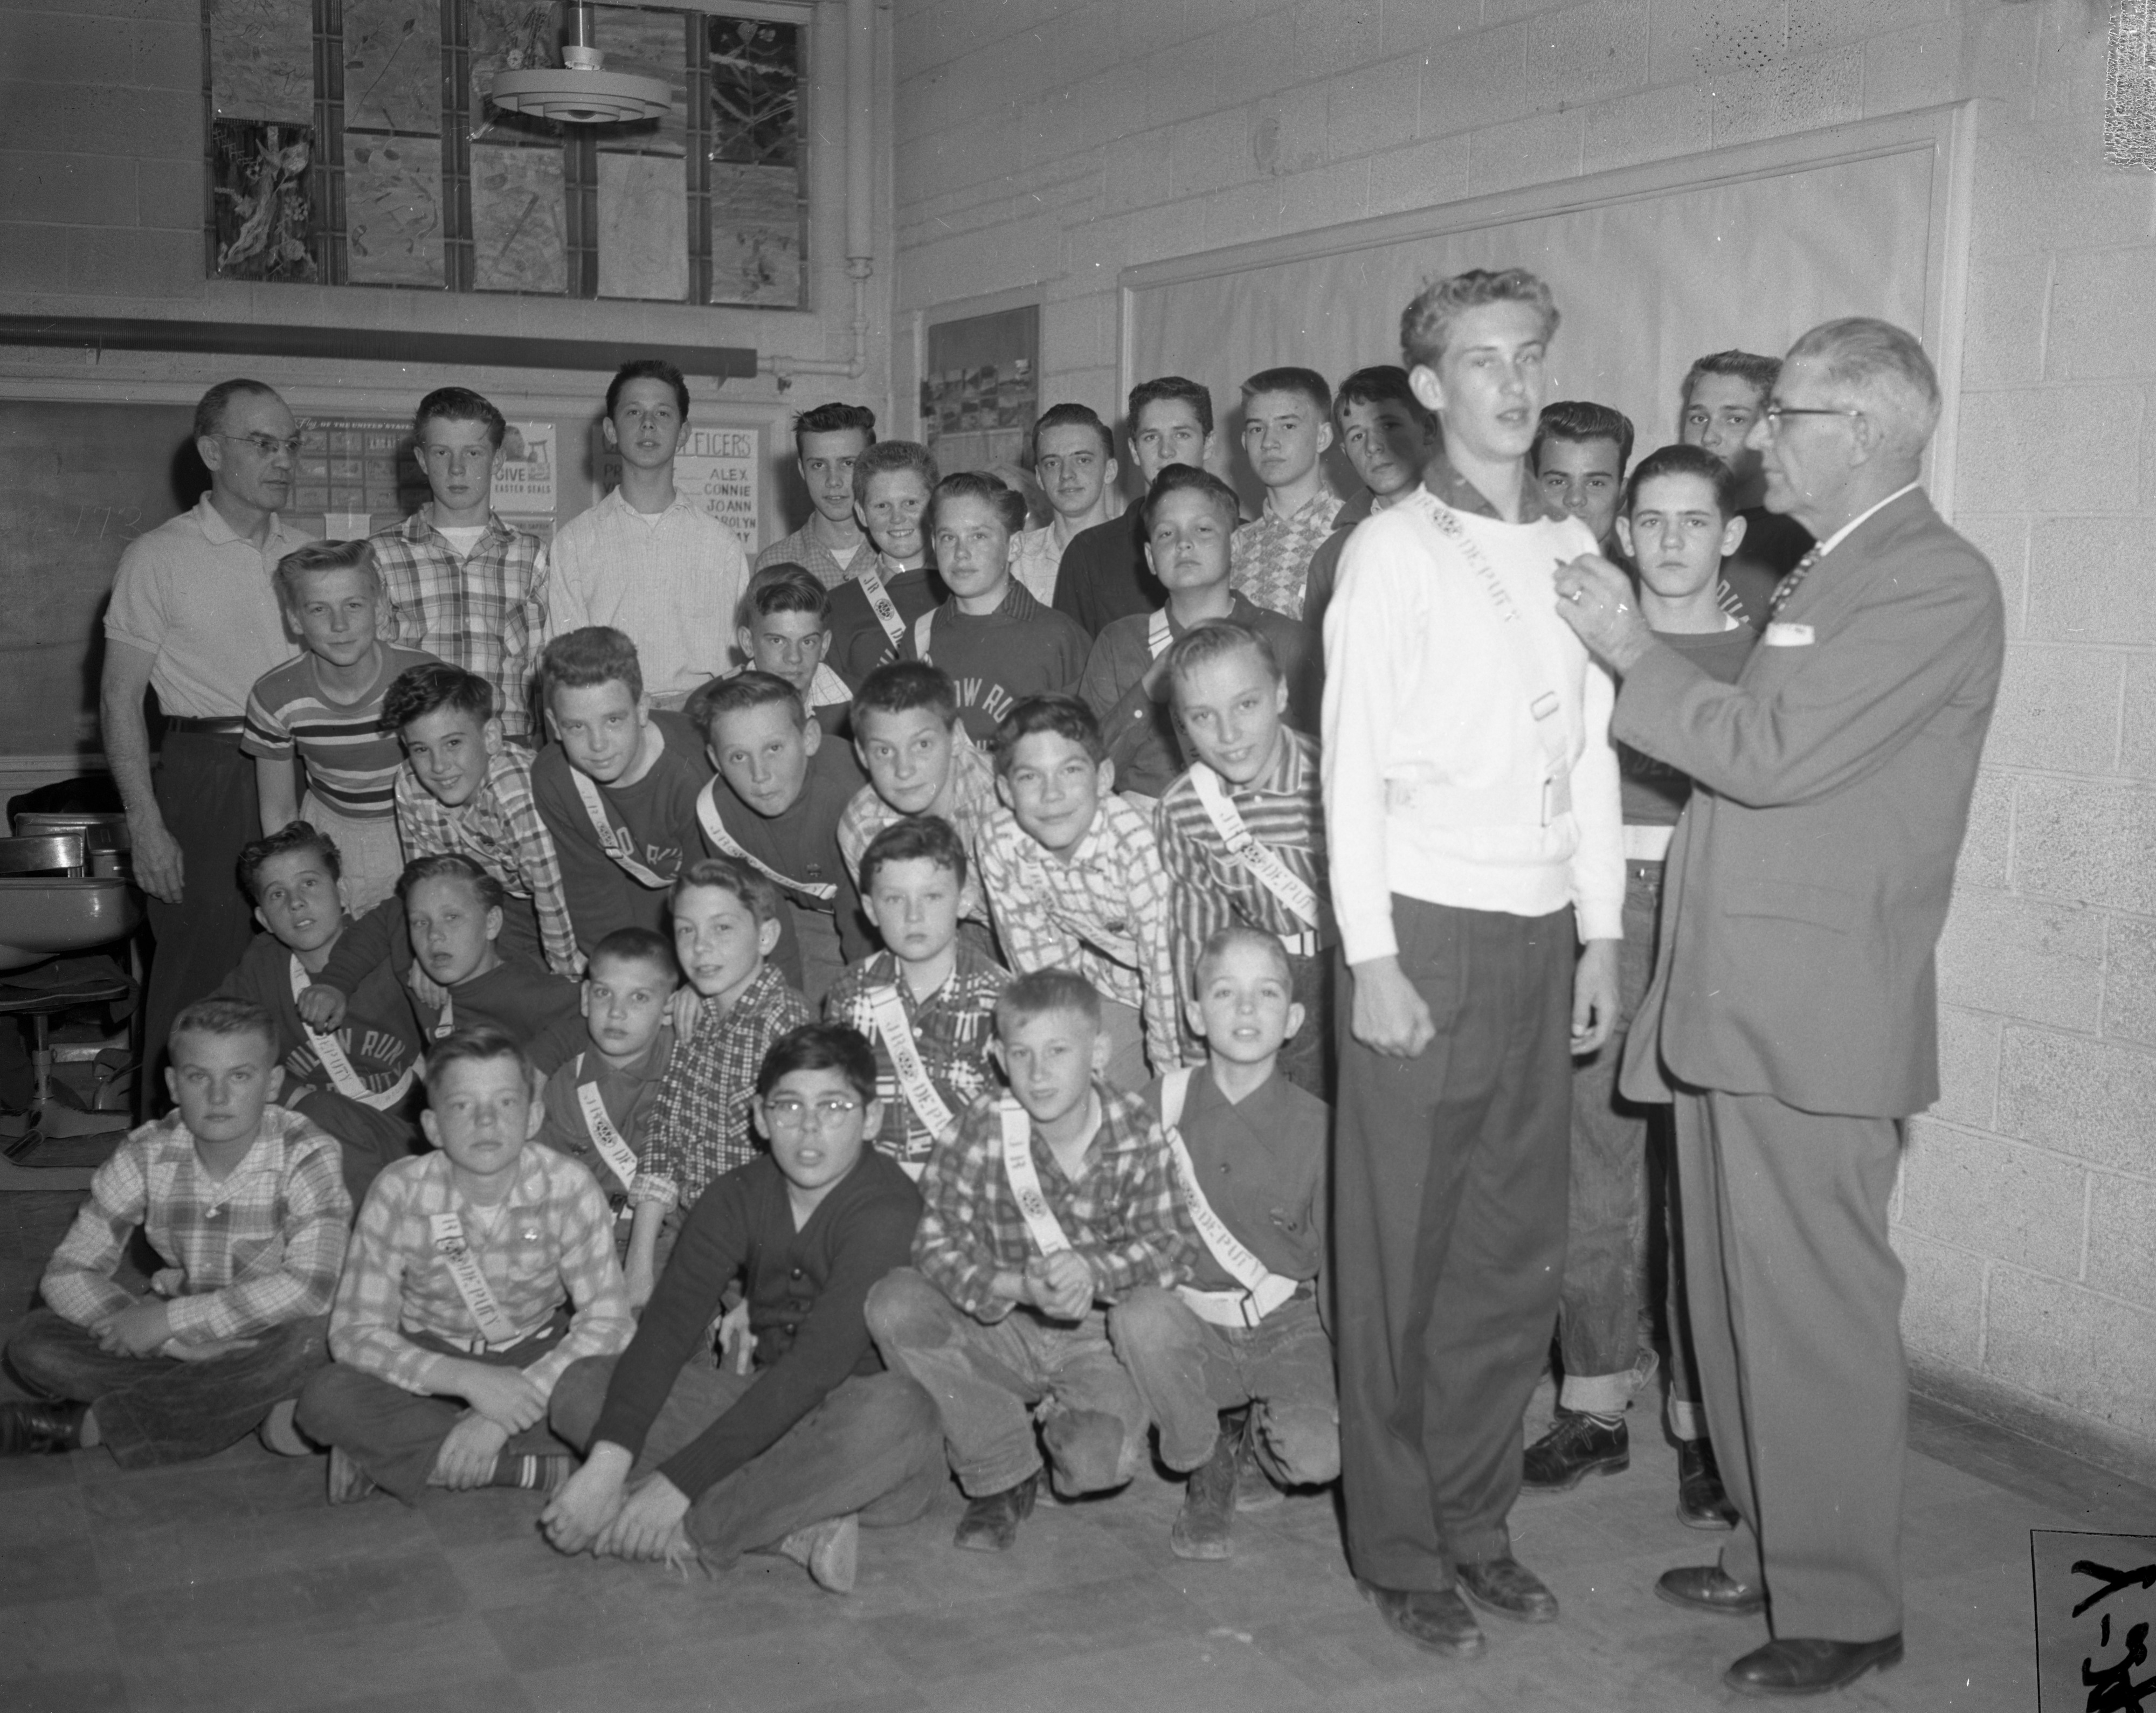 Washtenaw County's ninth chapter of the Junior Deputy League receives belts and badges, April 1957 image